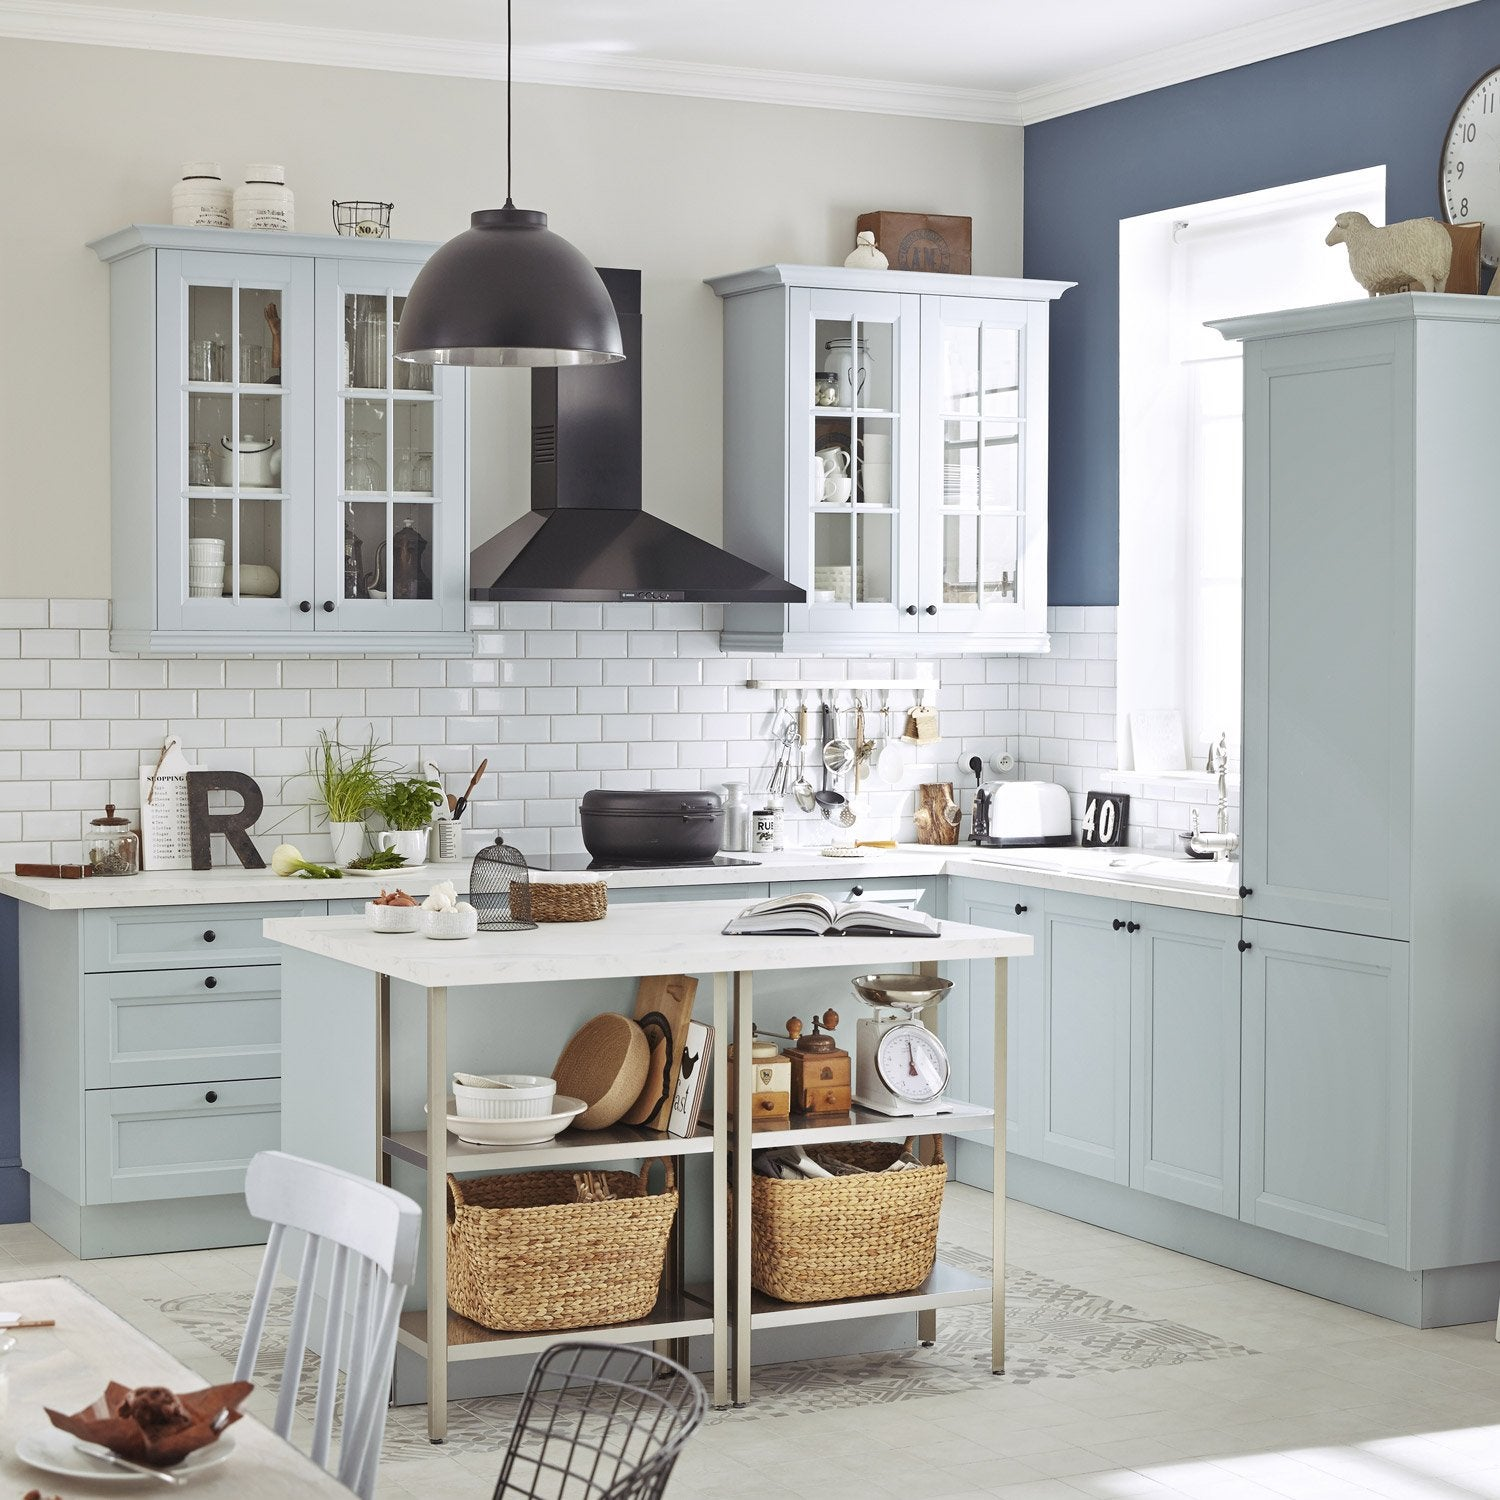 Meuble de cuisine bleu delinia ashford leroy merlin for Kitchen cabinets lowes with leroy merlin papiers peints